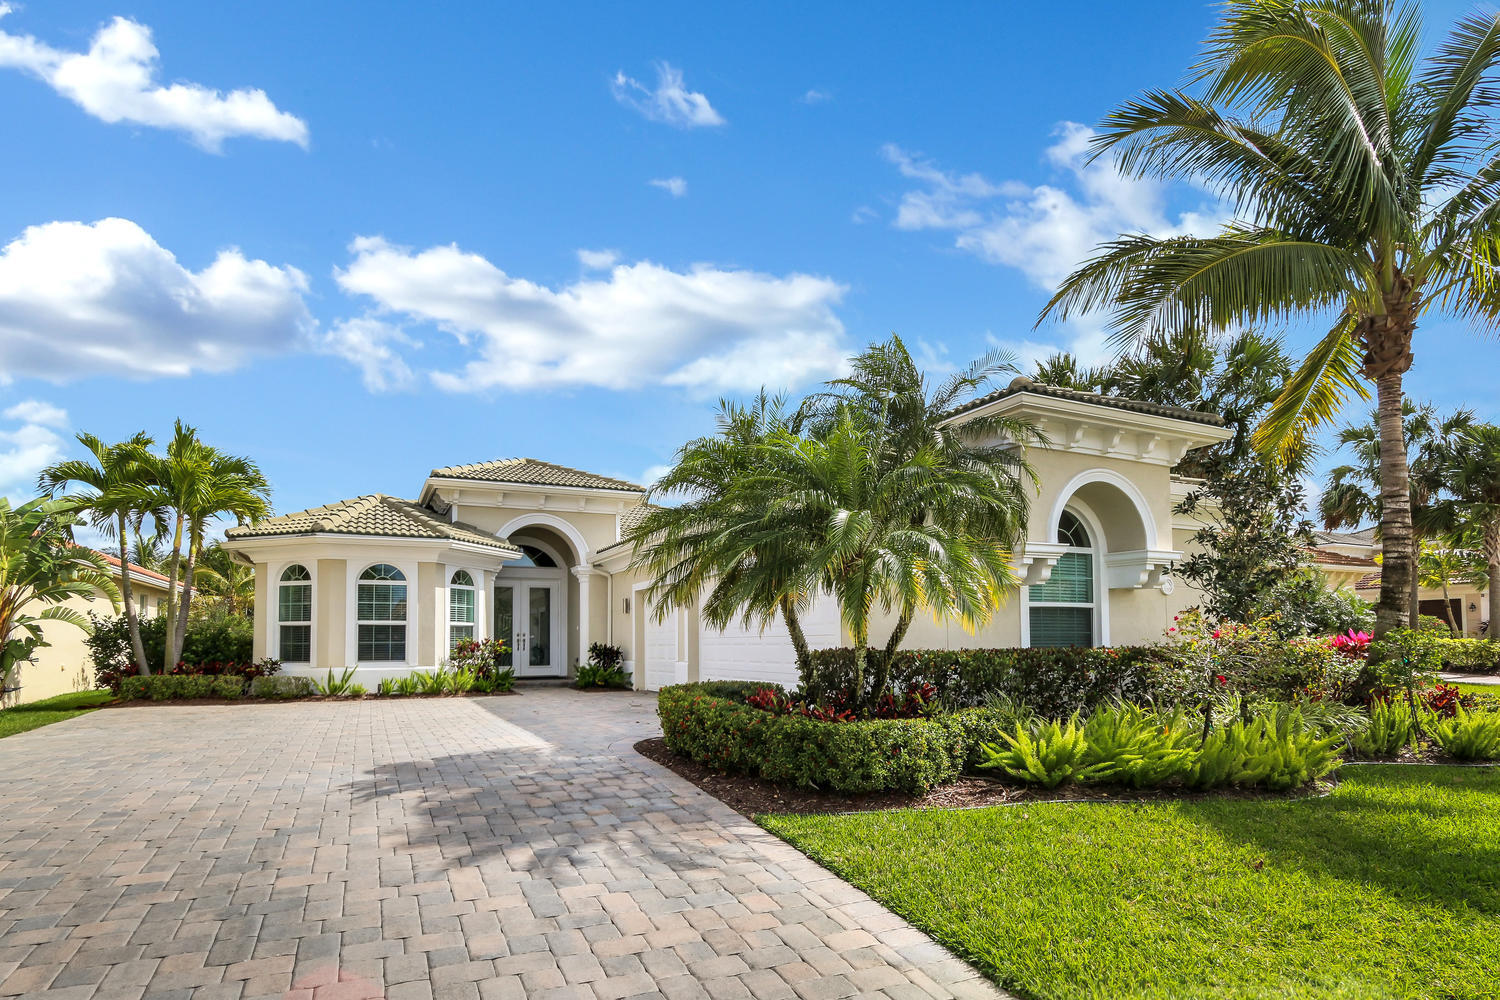 JUPITER COUNTRY CLUB REAL ESTATE